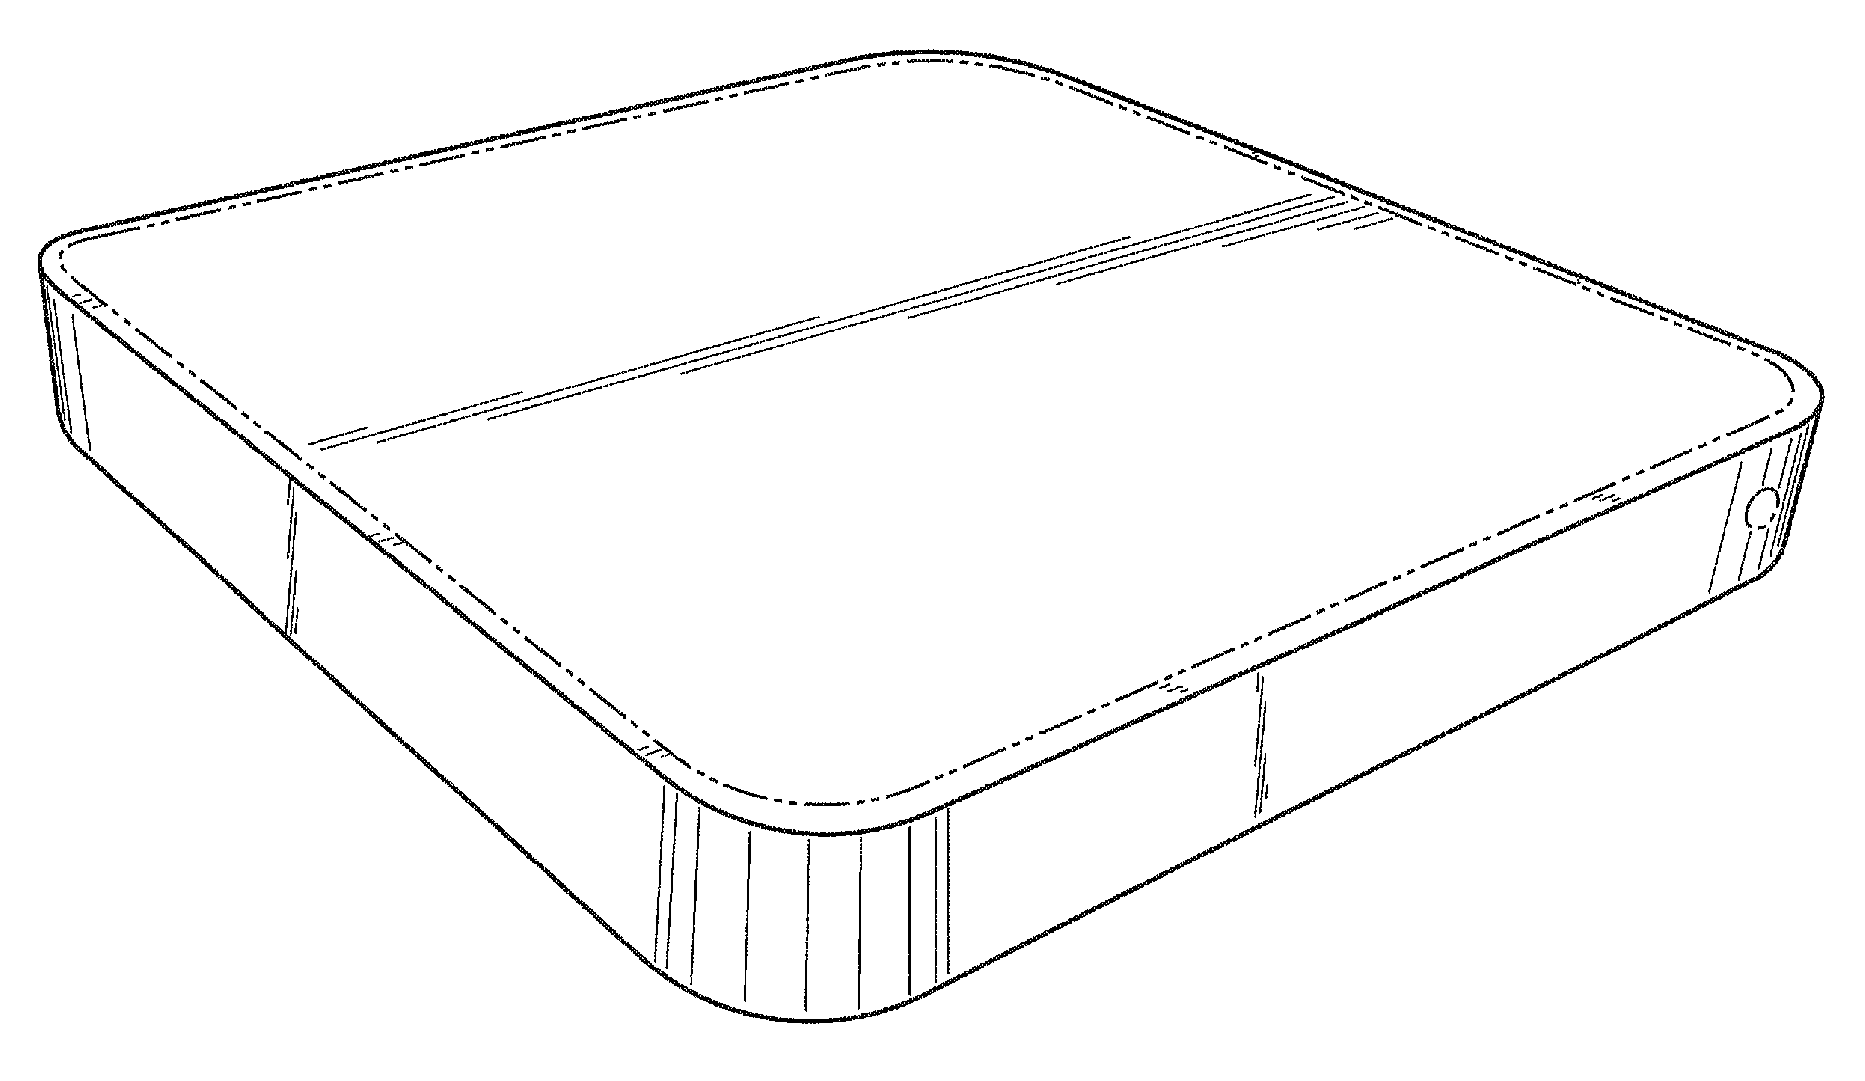 Apple  patent by Steve Jobs from 2010 for media device - USD620953